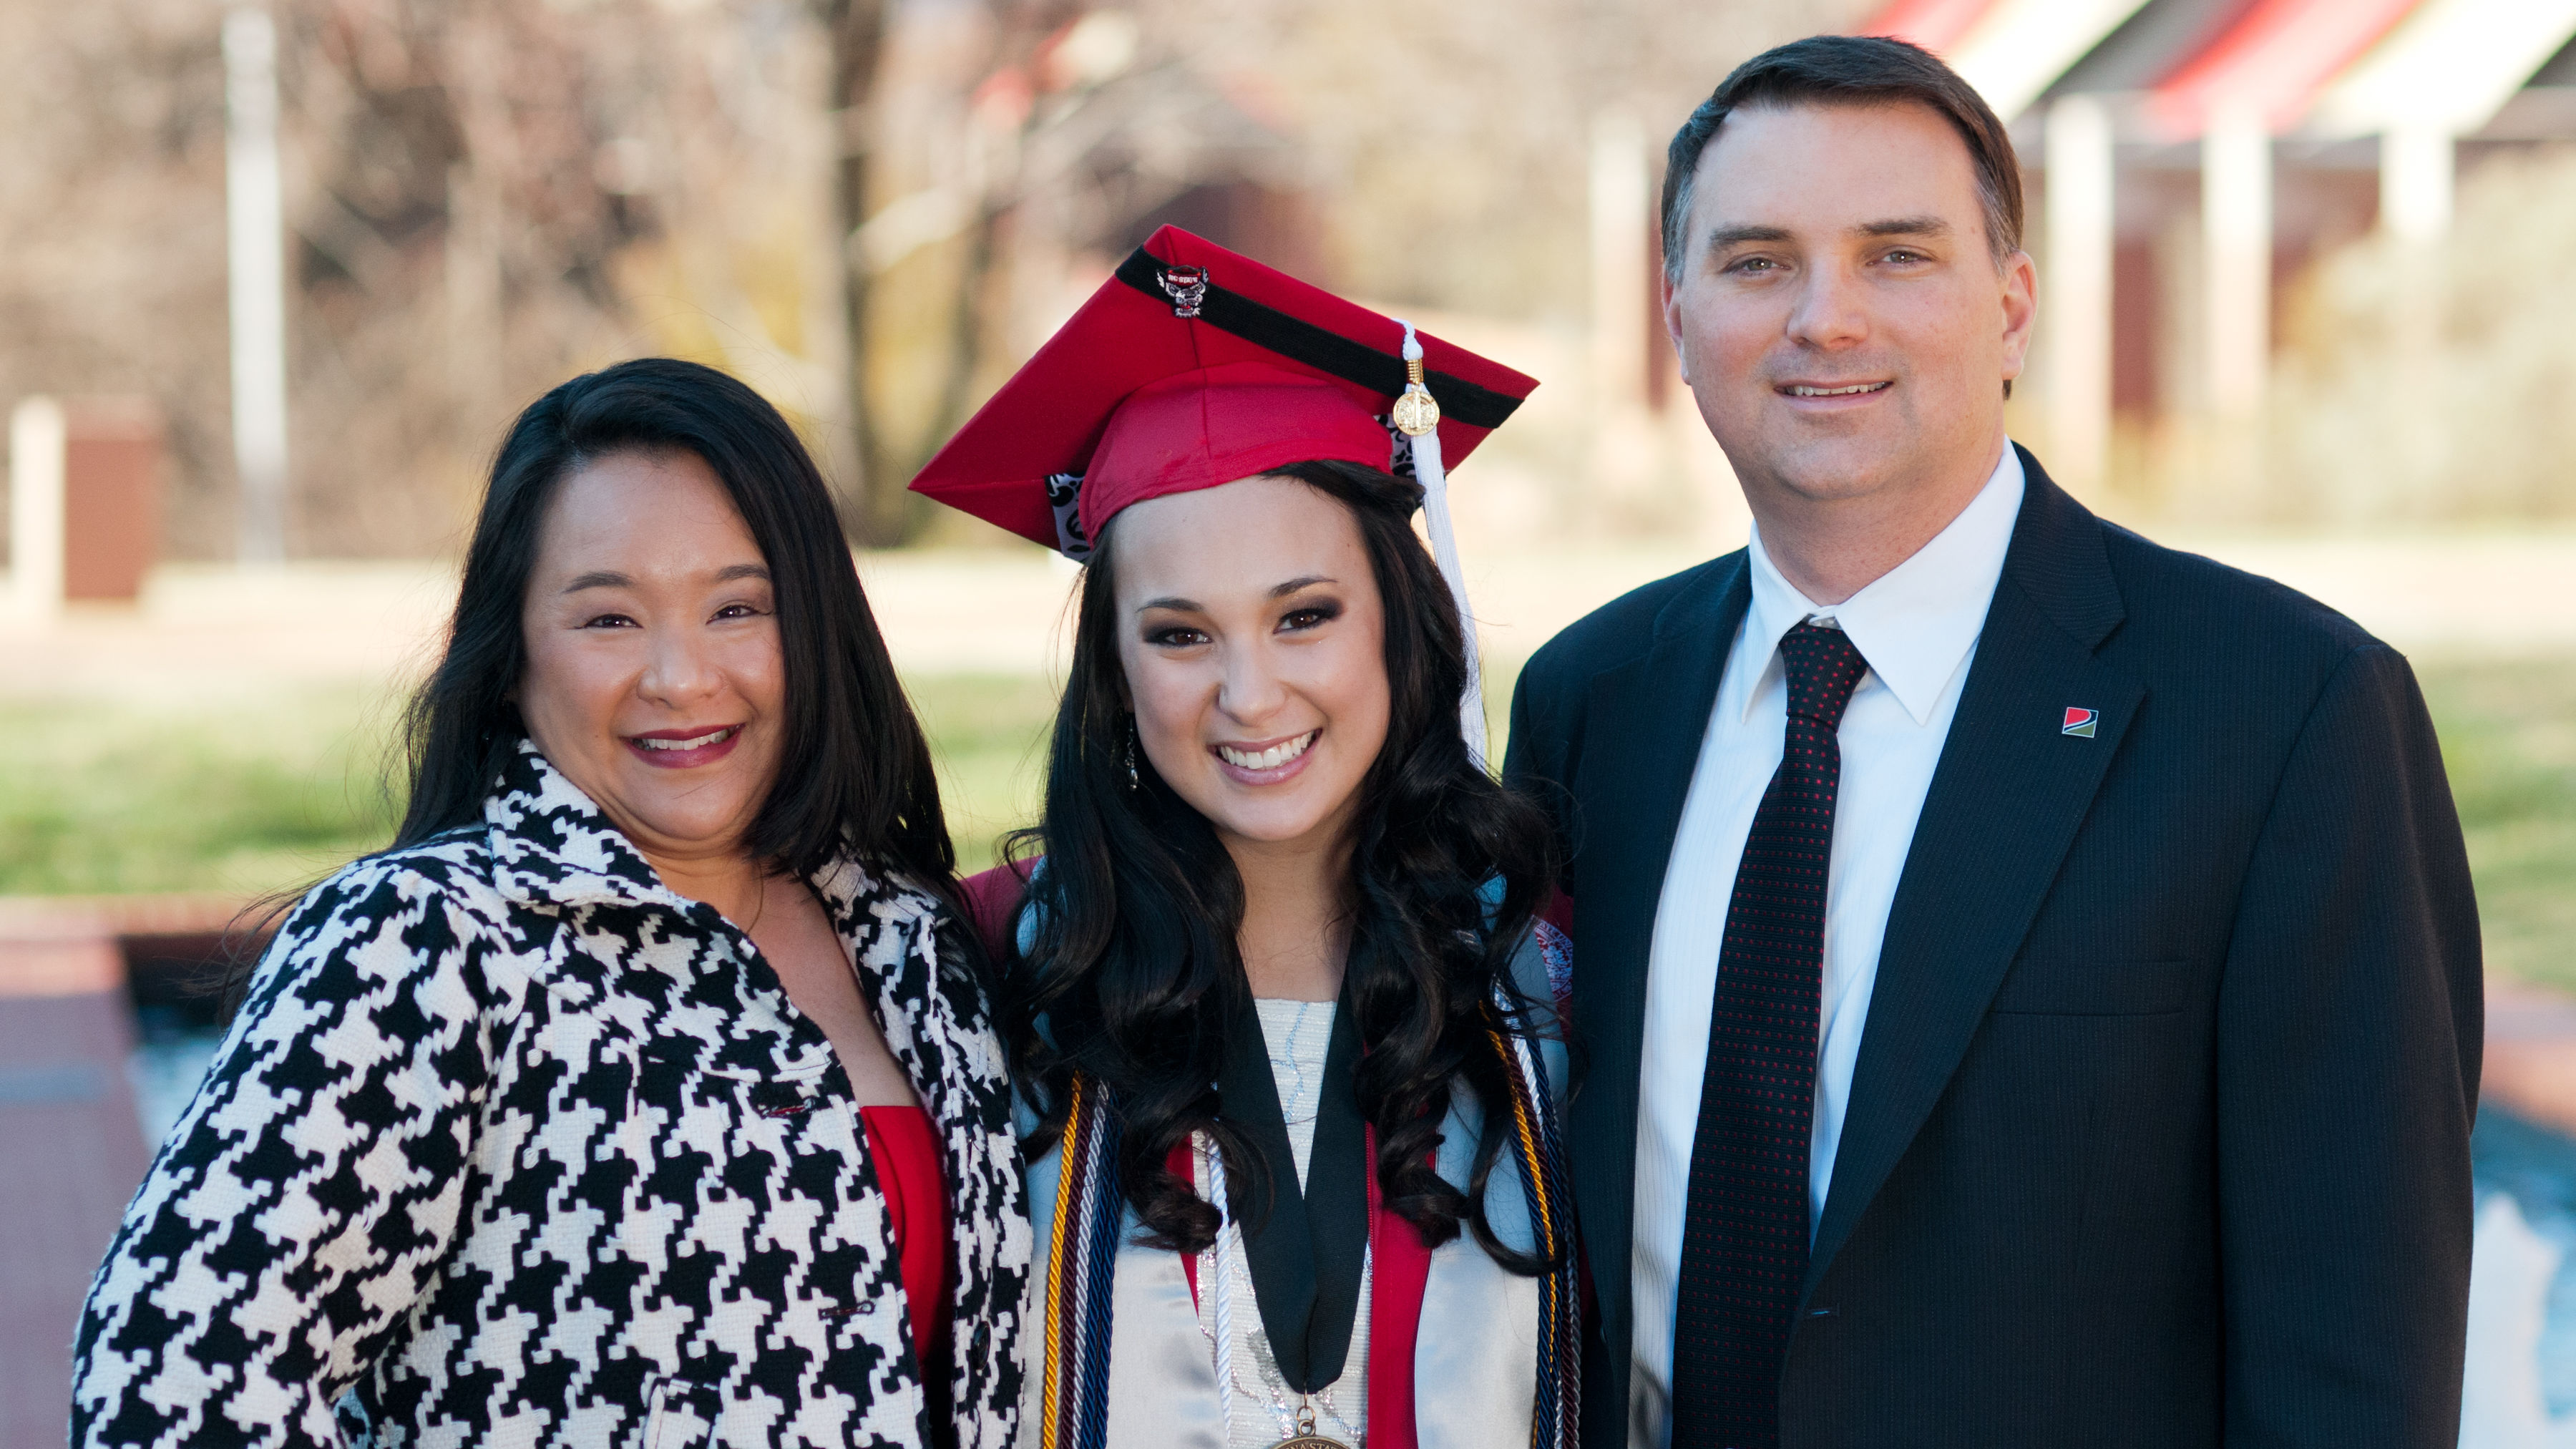 Smiling Cassia Lewis in red cap and gown flanked by her parents